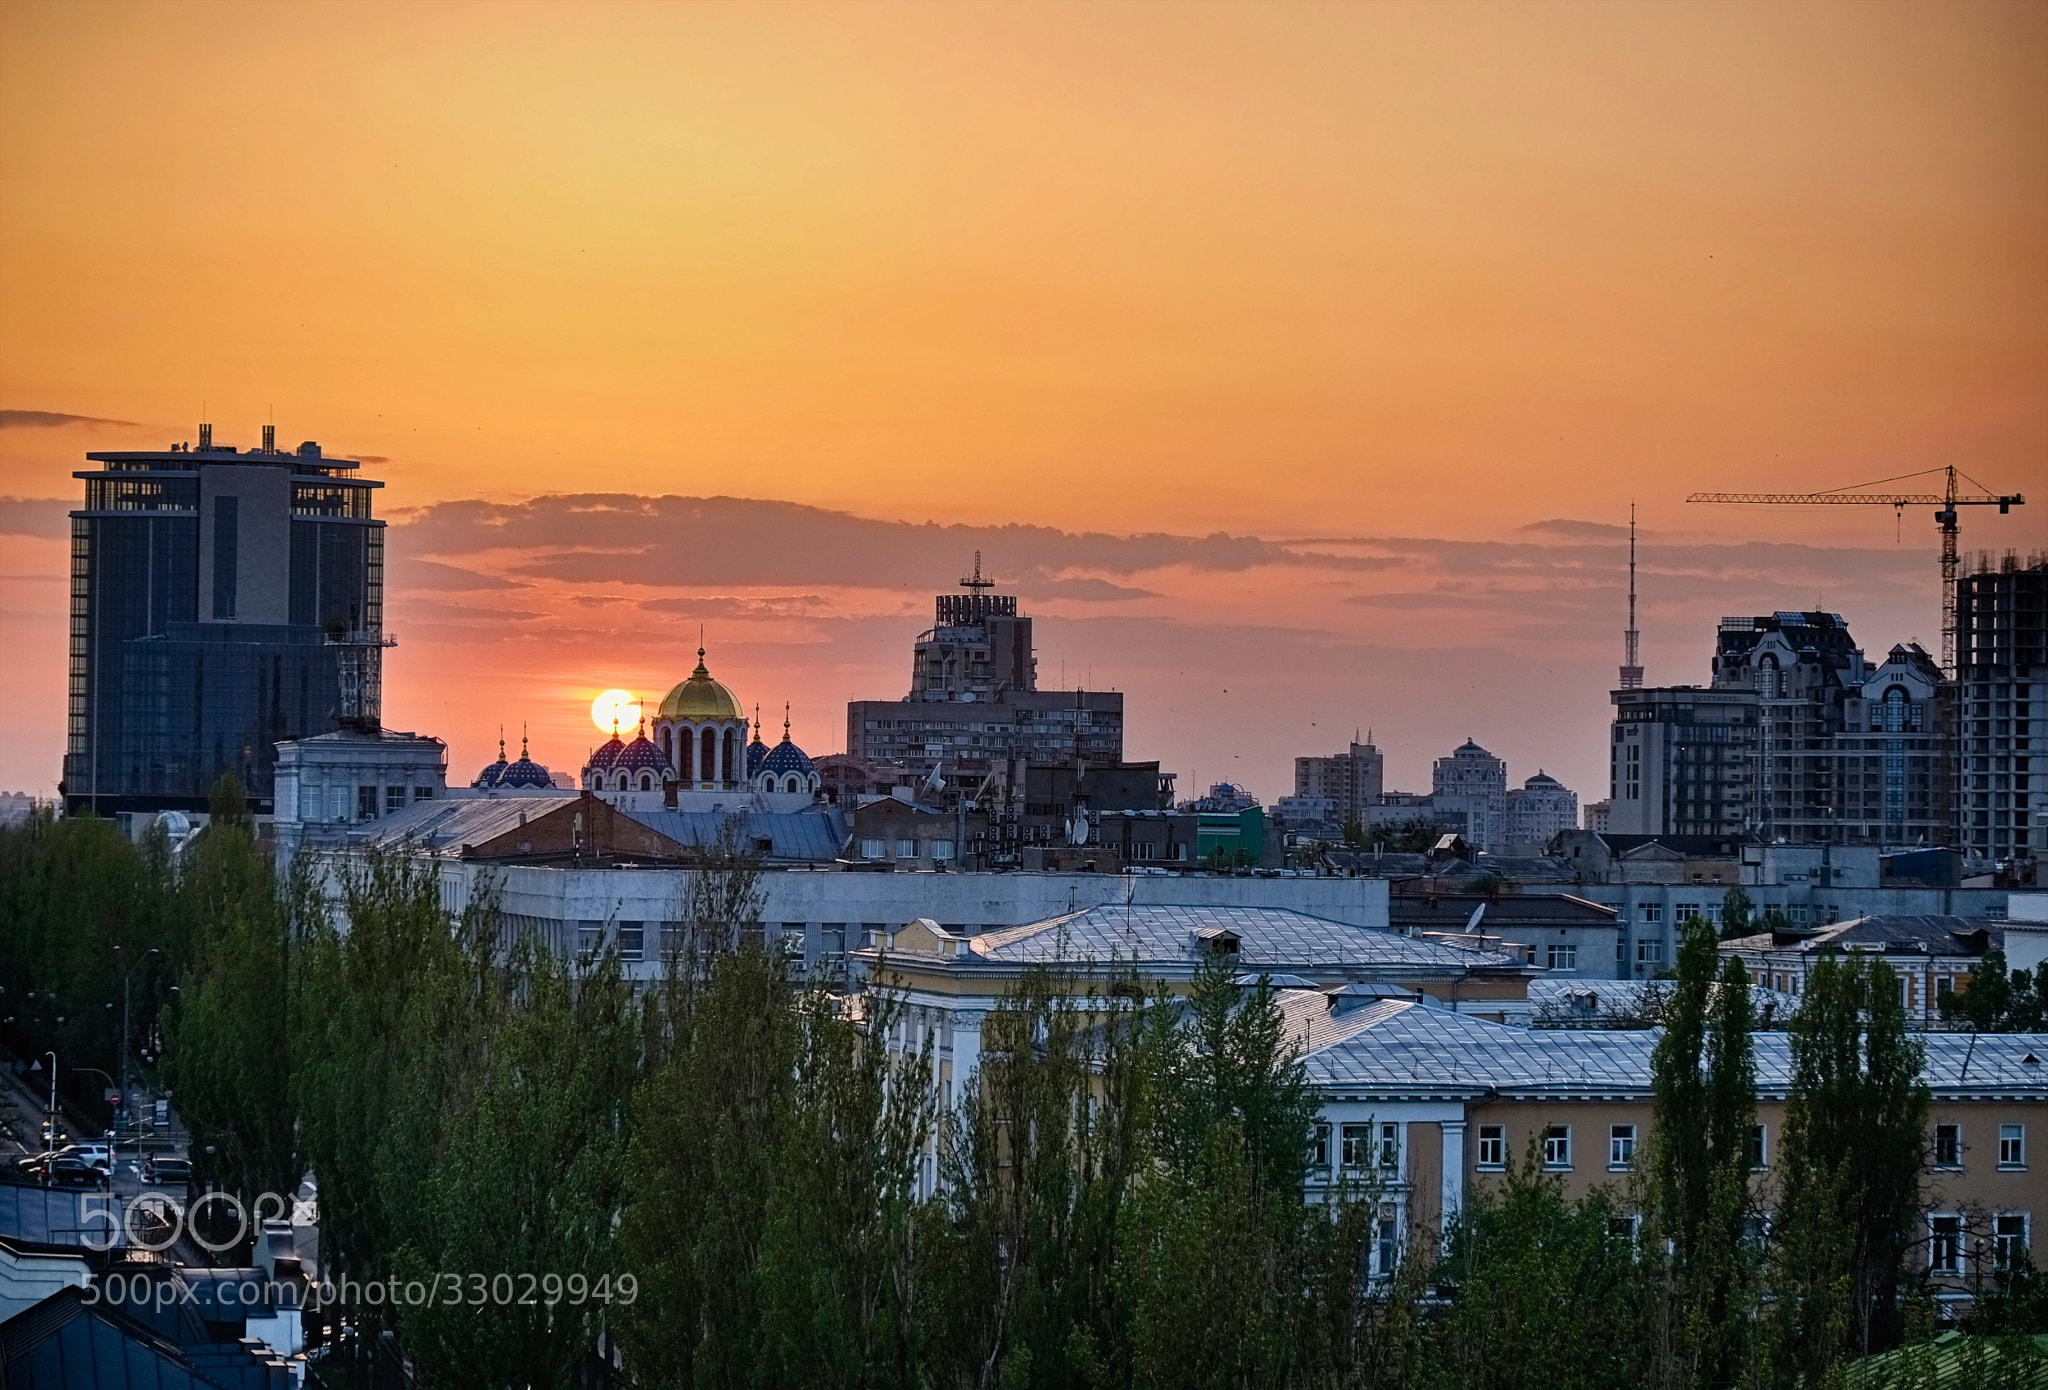 Photograph Kiev sunset by world_image on 500px